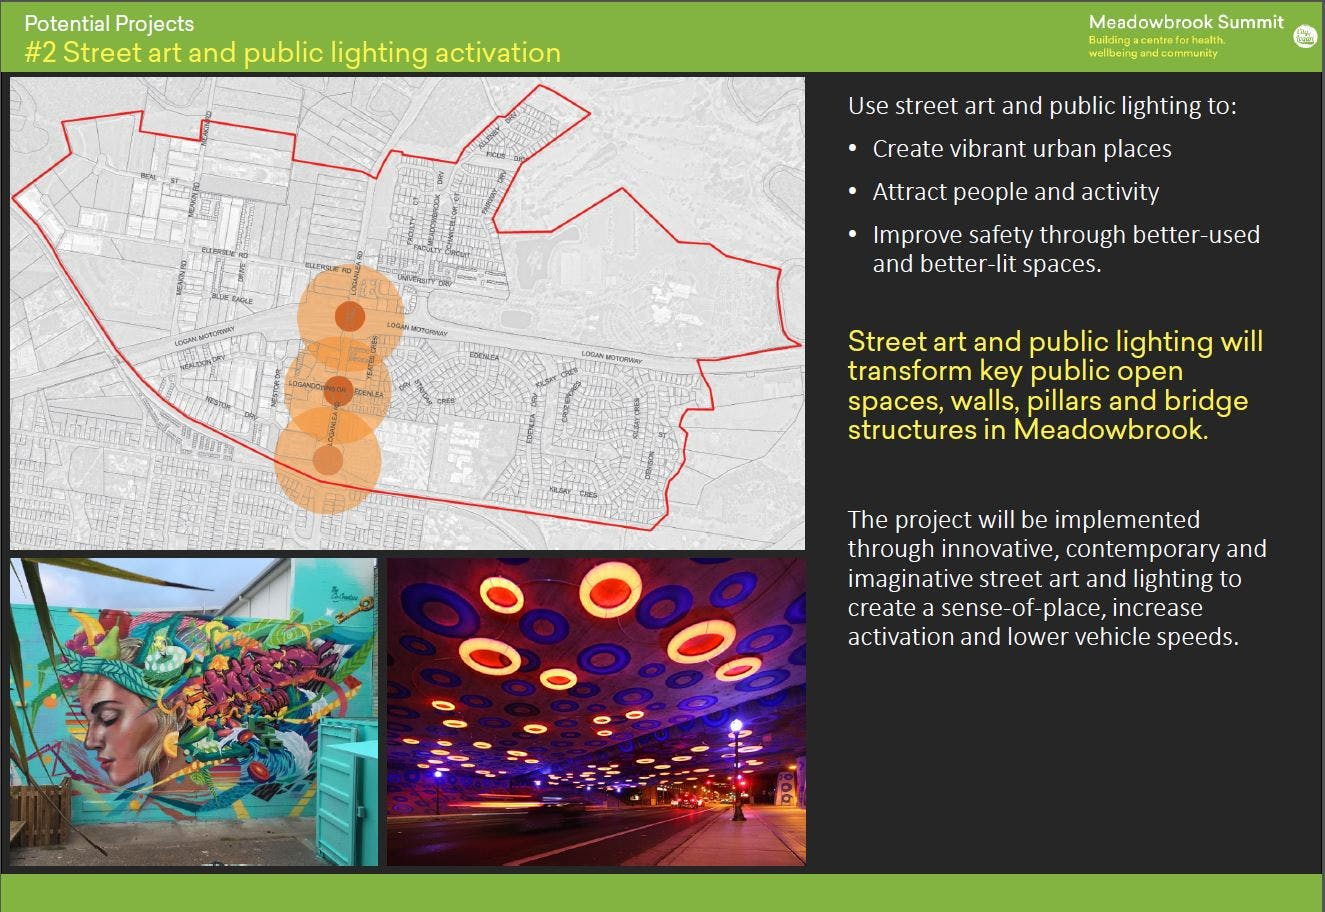 2. Street art and public lighting activation